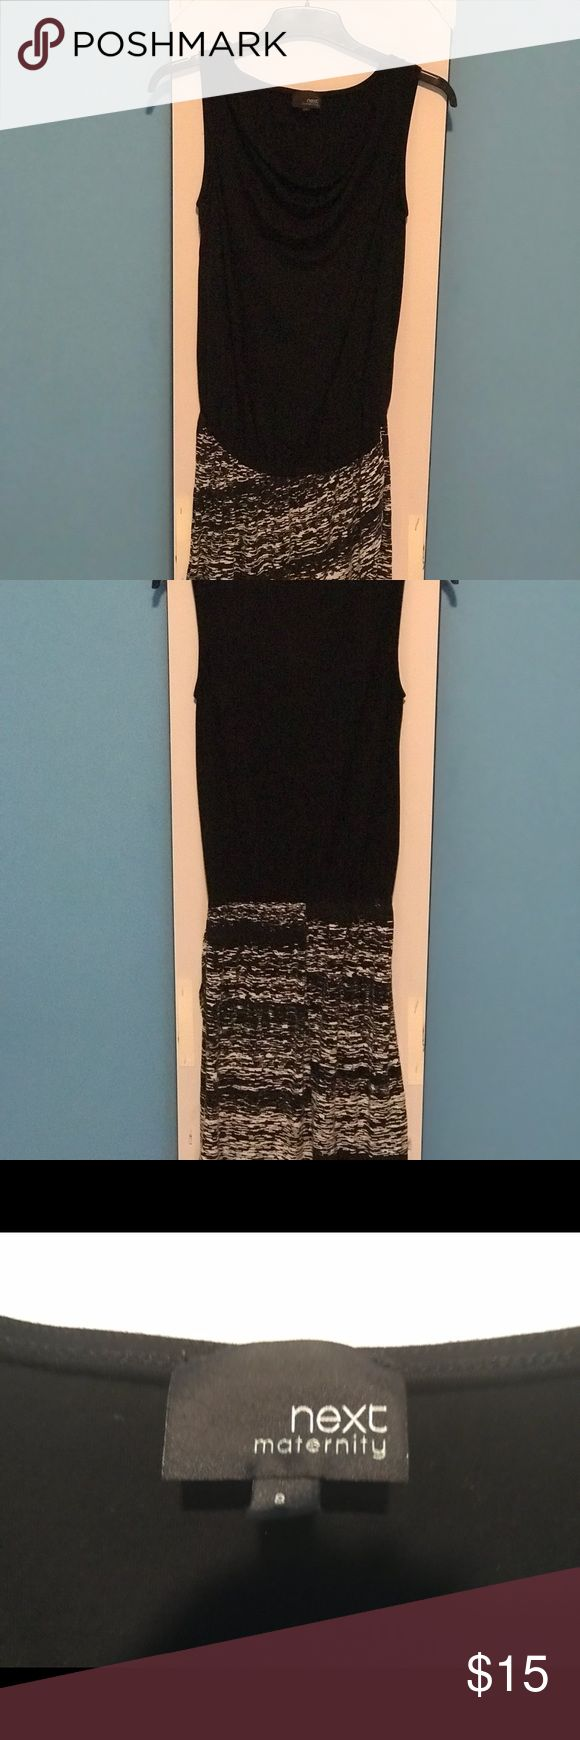 Next UK maternity dress size 8 Uk 4 US Lovely next Uk maternity dress in a flattering black and white. Size 8 Uk or 4 us but would fit 6 as well Next Direct Dresses Strapless